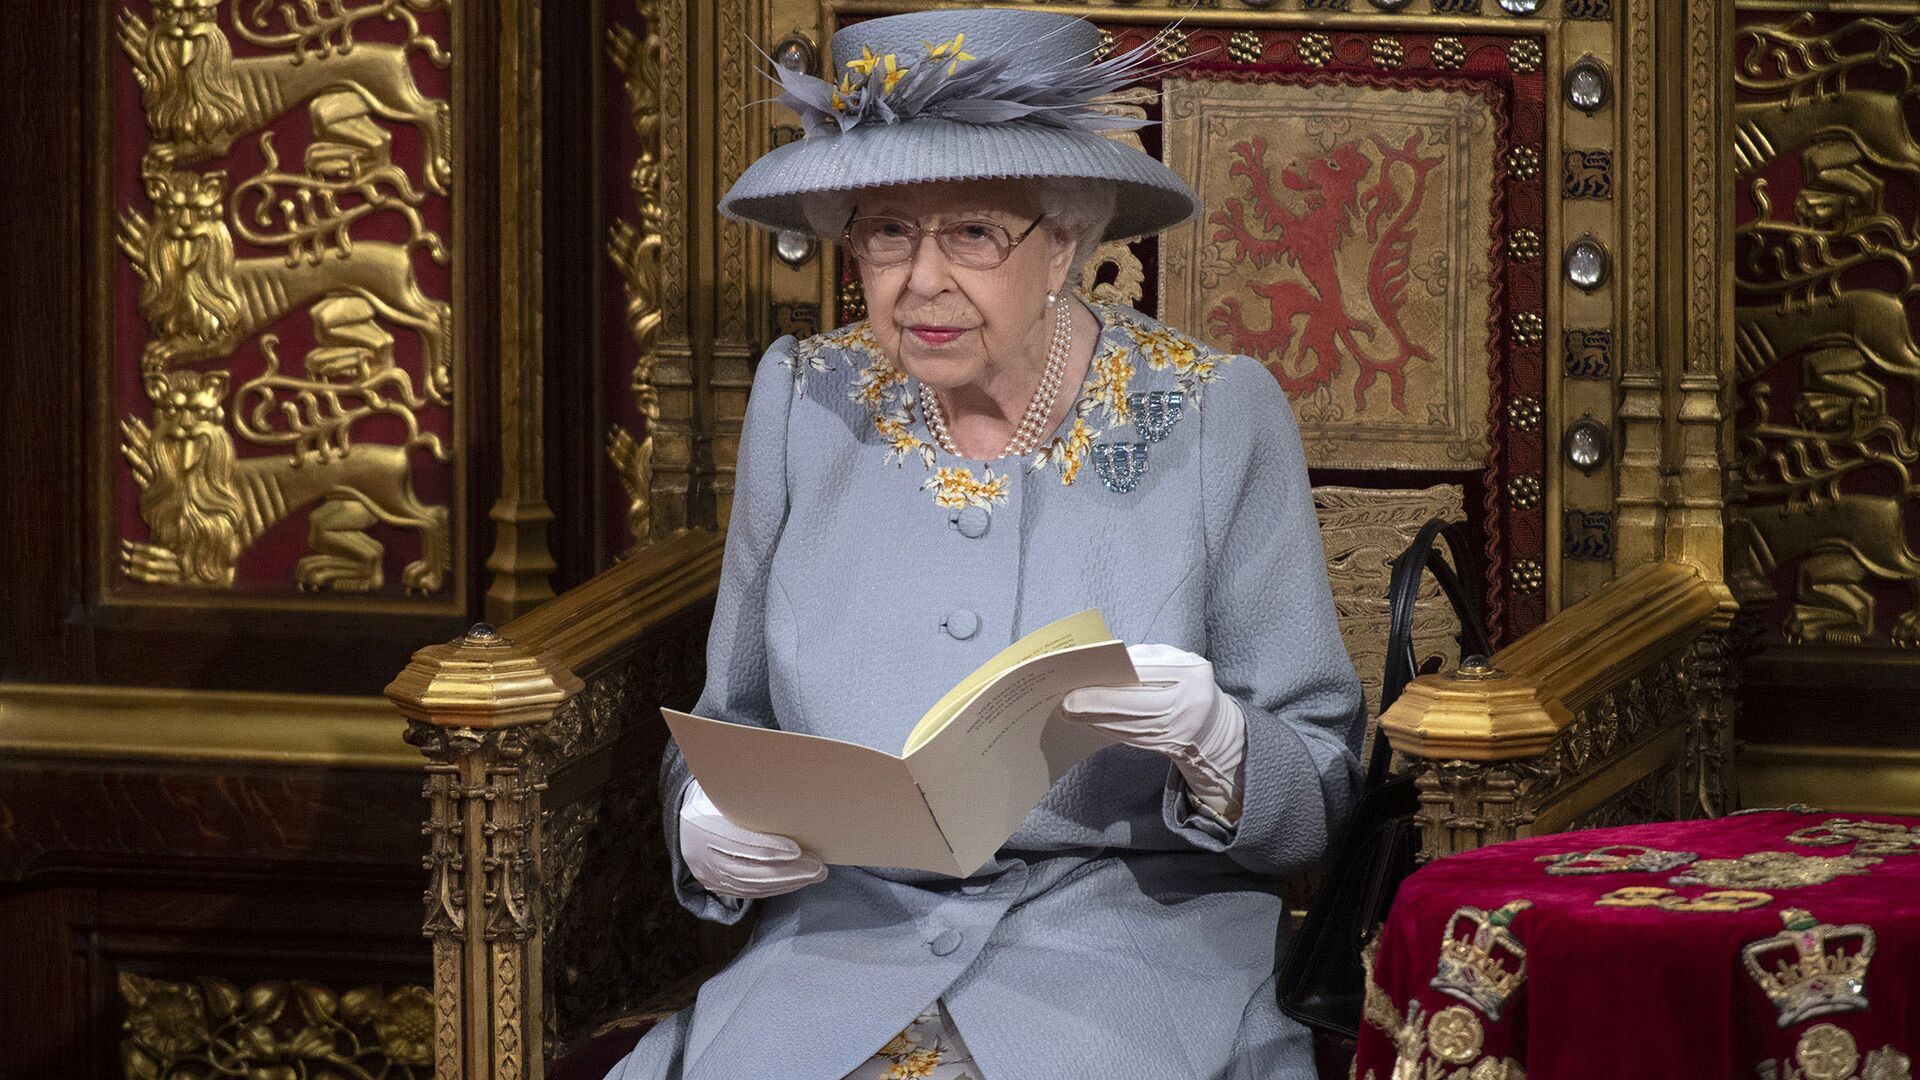 Britain's Queen Elizabeth II delivers the speech in the House of Lords during the State Opening of Parliament at the Palace of Westminster in London, Tuesday May 11, 2021. (Eddie Mulholland/Pool via AP) - Sputnik International, 1920, 10.09.2021